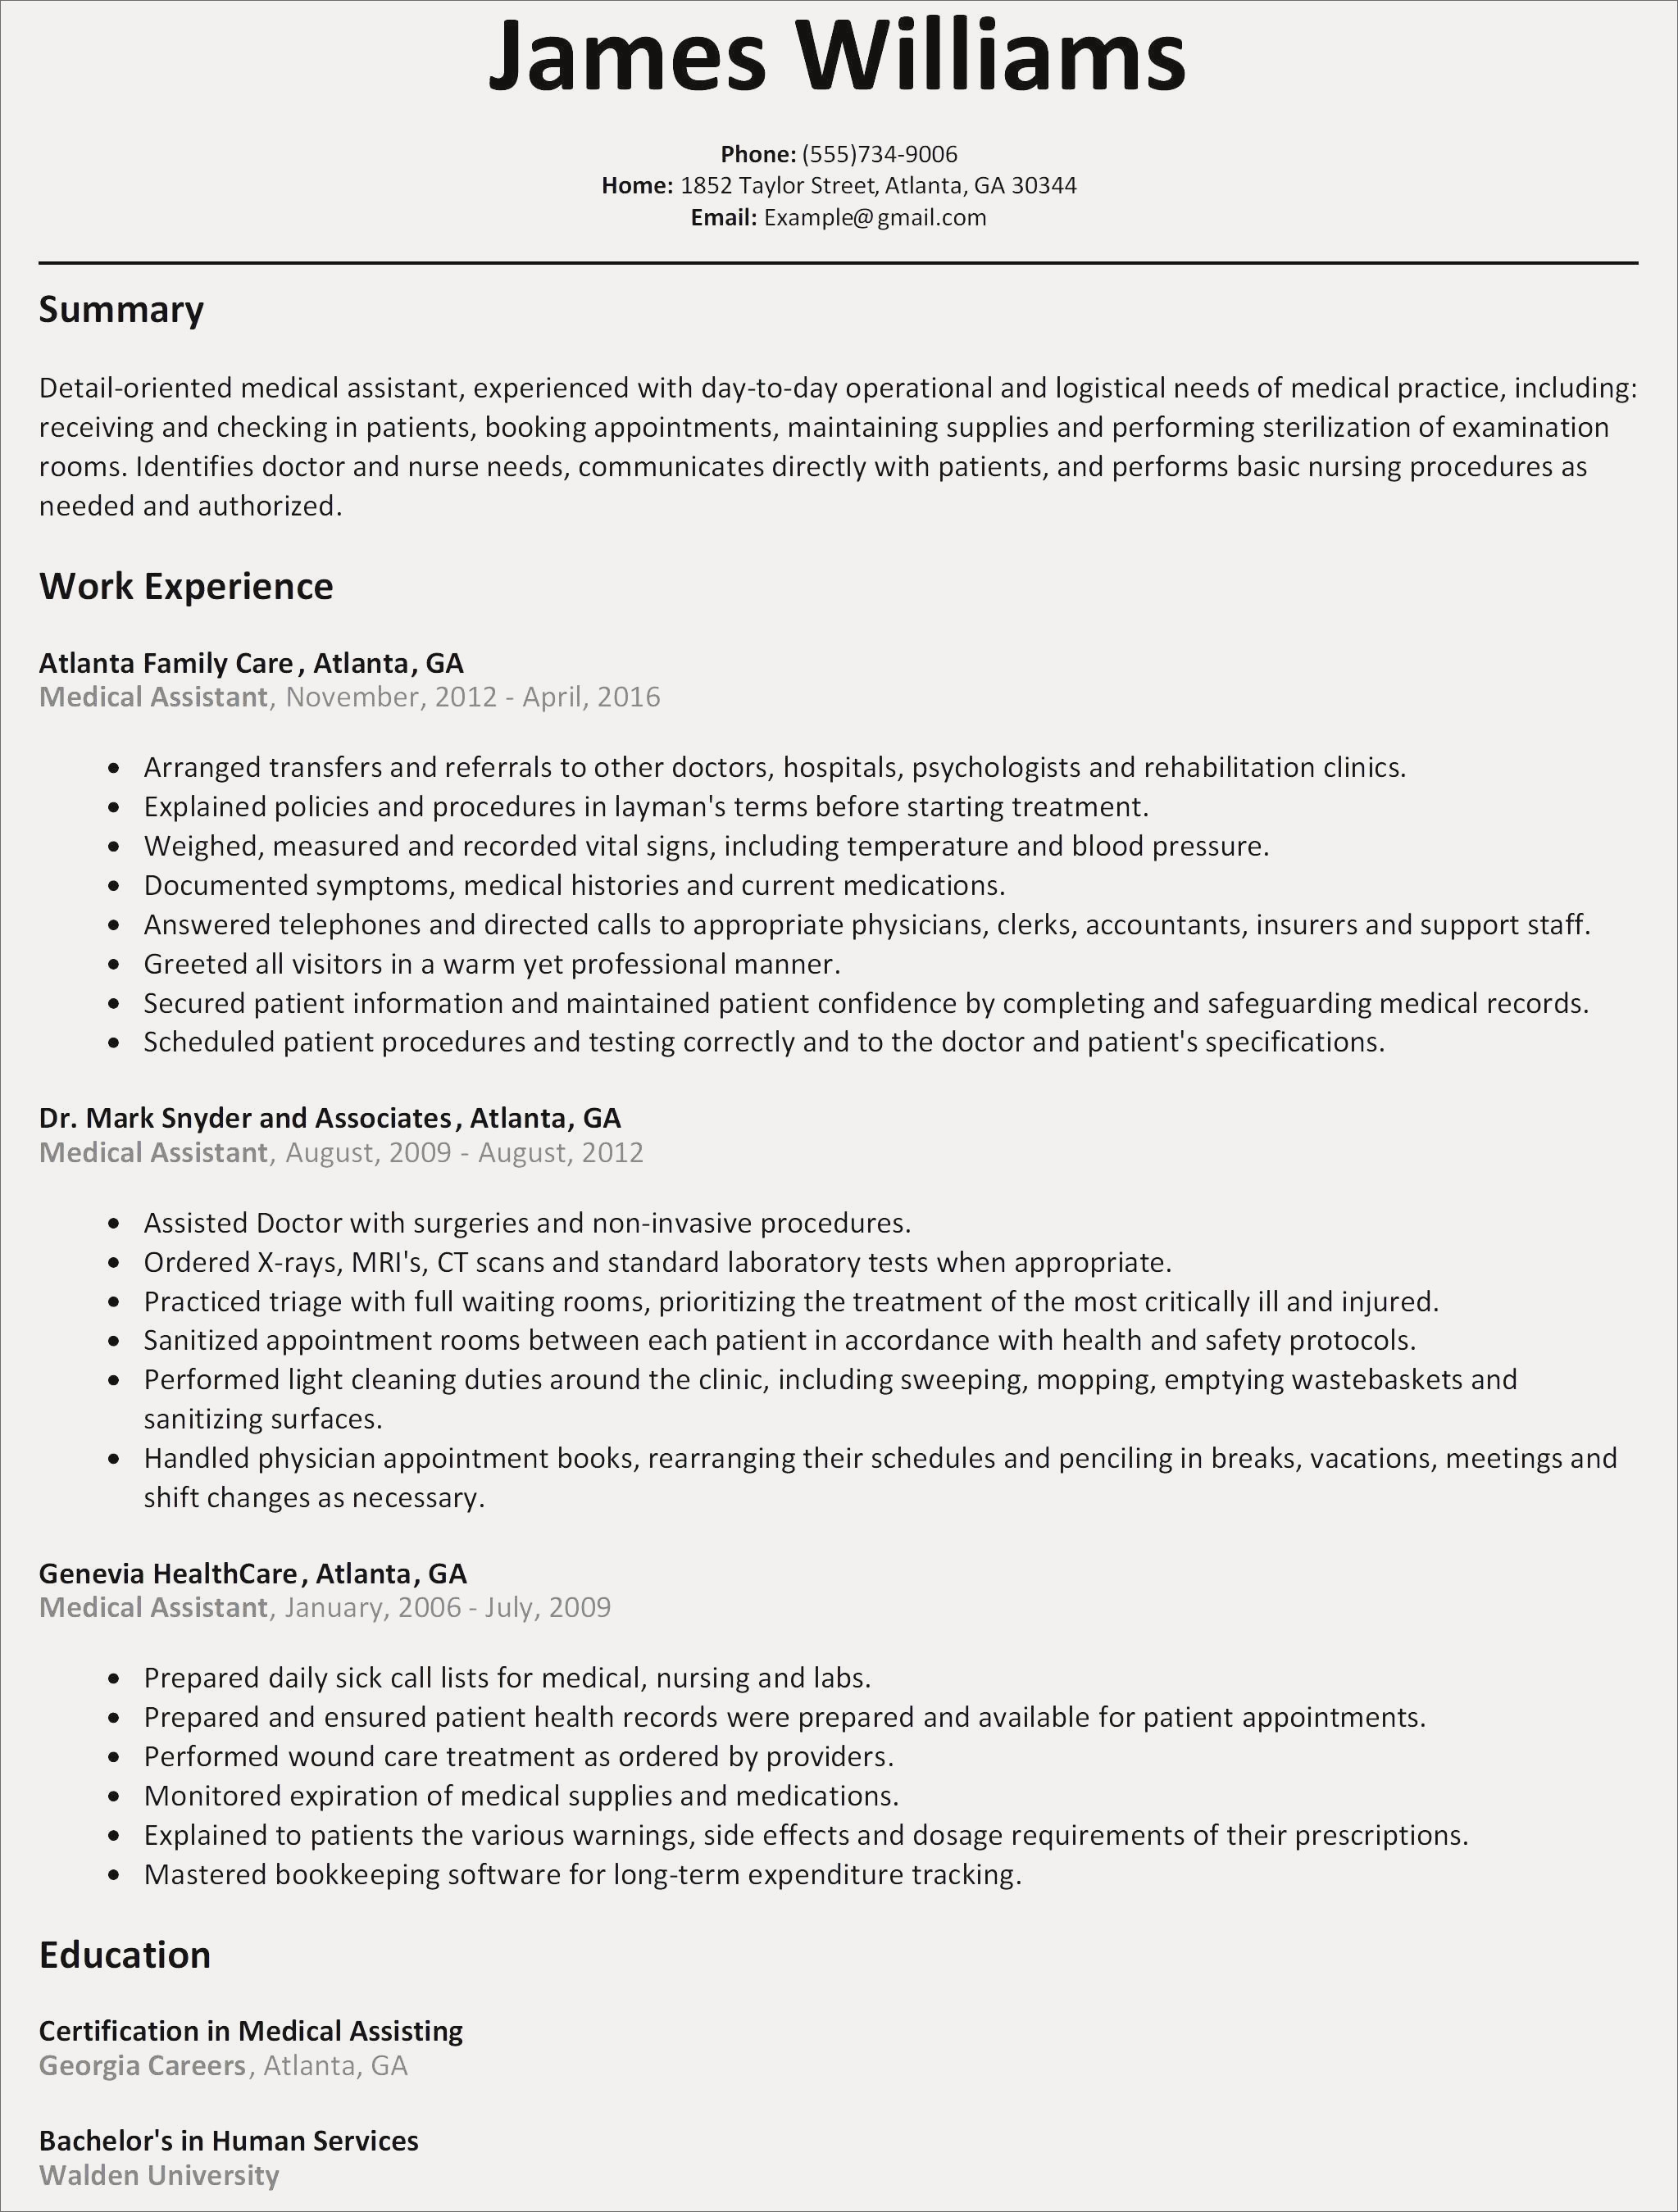 Software Engineer Resume Summary - Engineering Resume Examples Free 46 Standard software Engineer